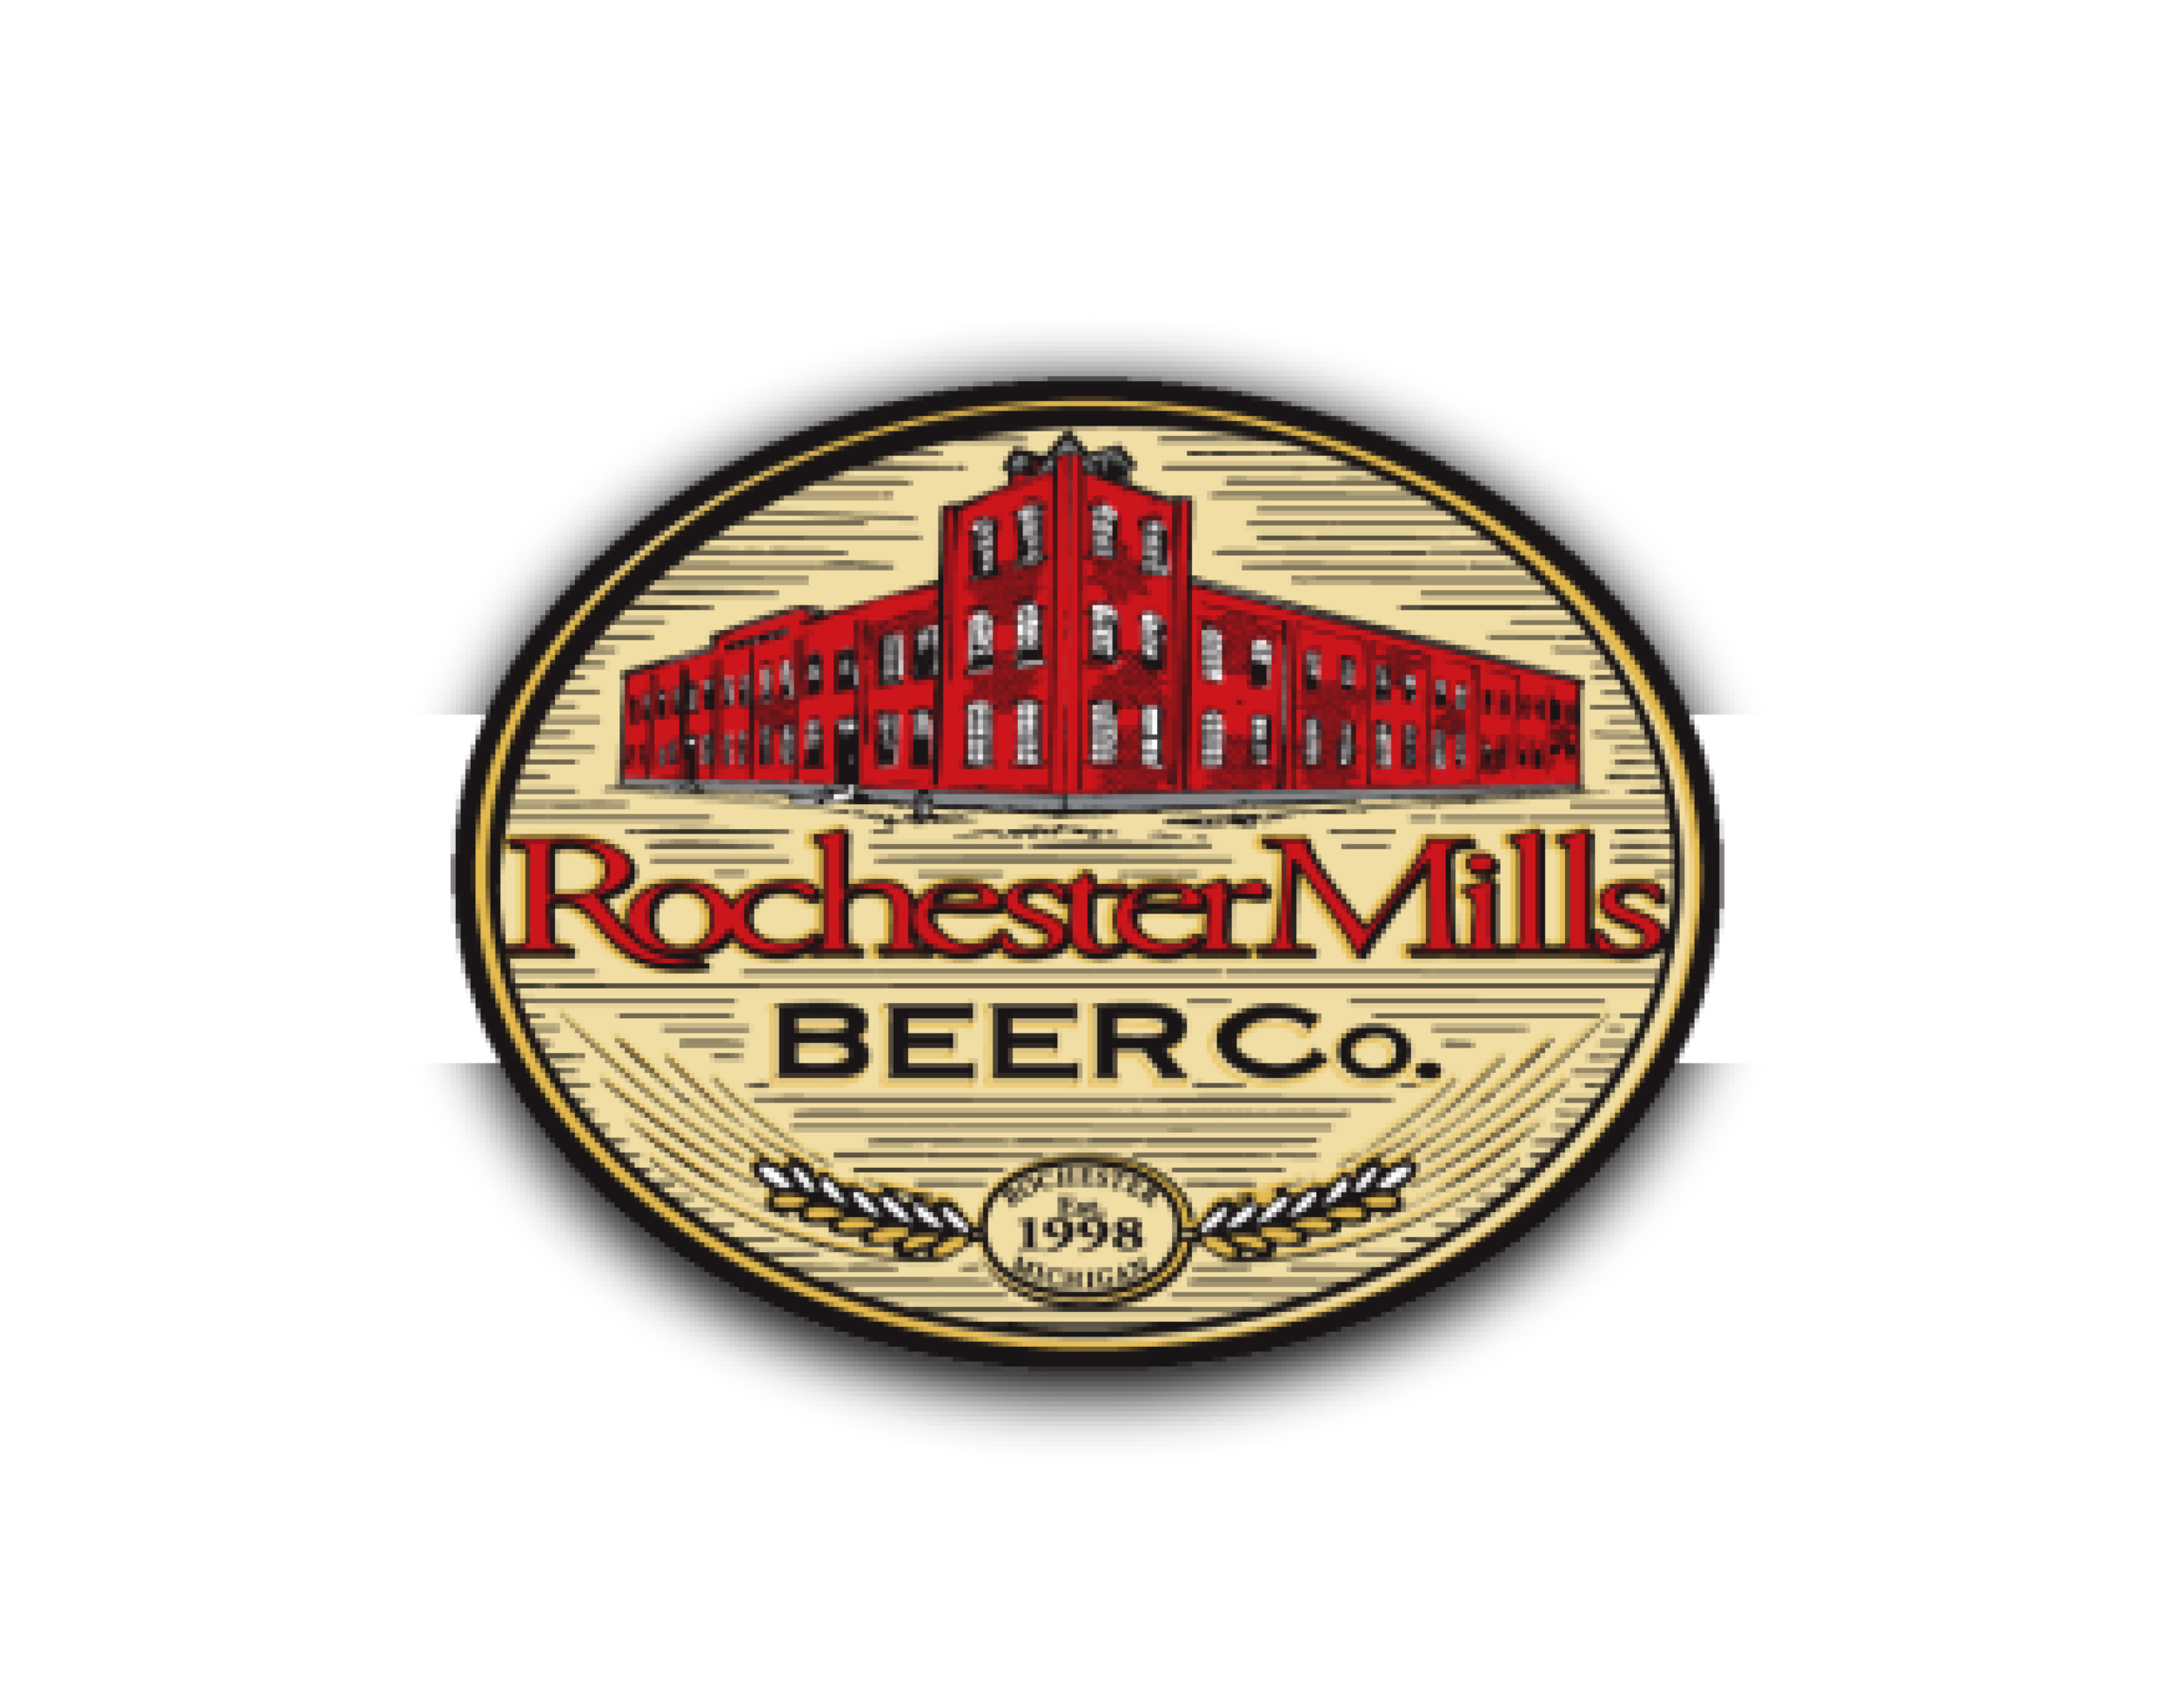 Rochester Mills Beer Company logo. Links to Rochester Mills Beer Company website.